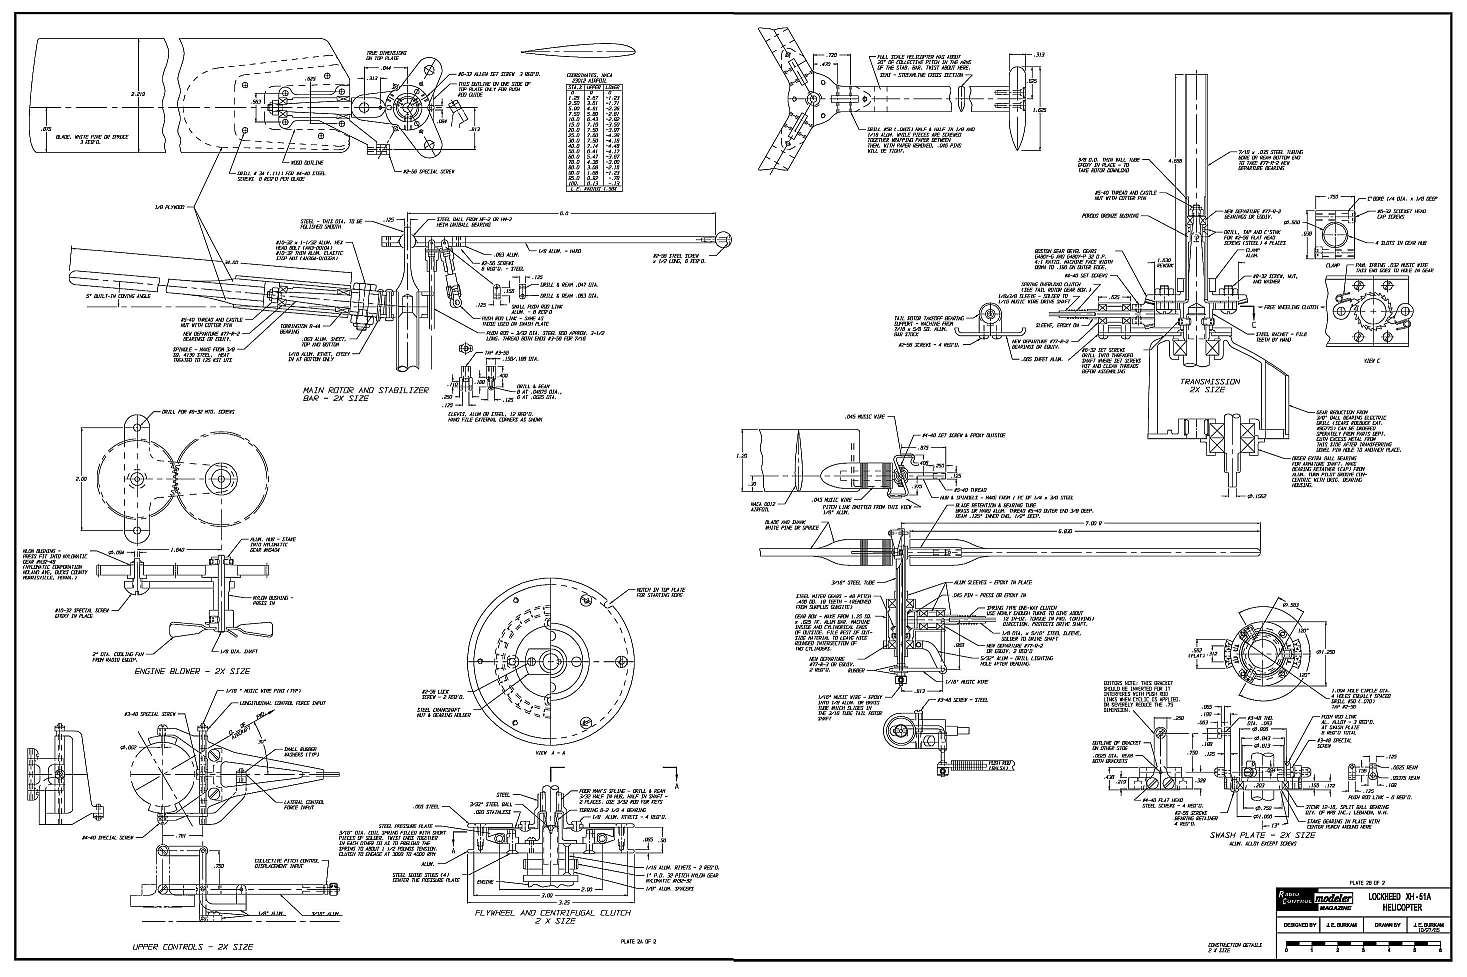 Awesome Trex 450 Wiring Schematic Contemporary - The Best ...